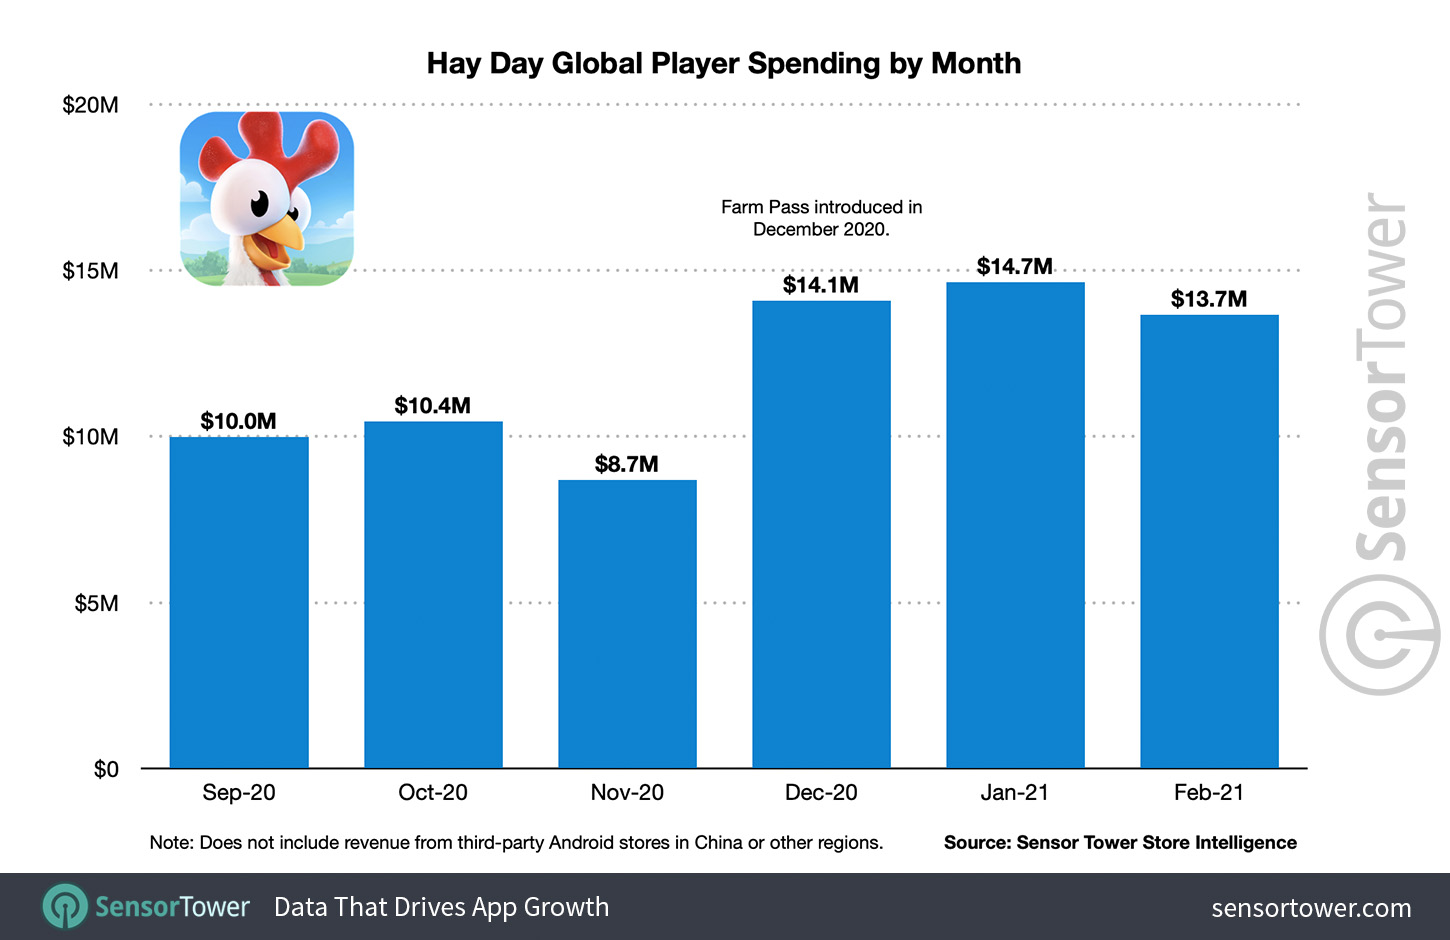 Hay Day Global Player Spending by Month